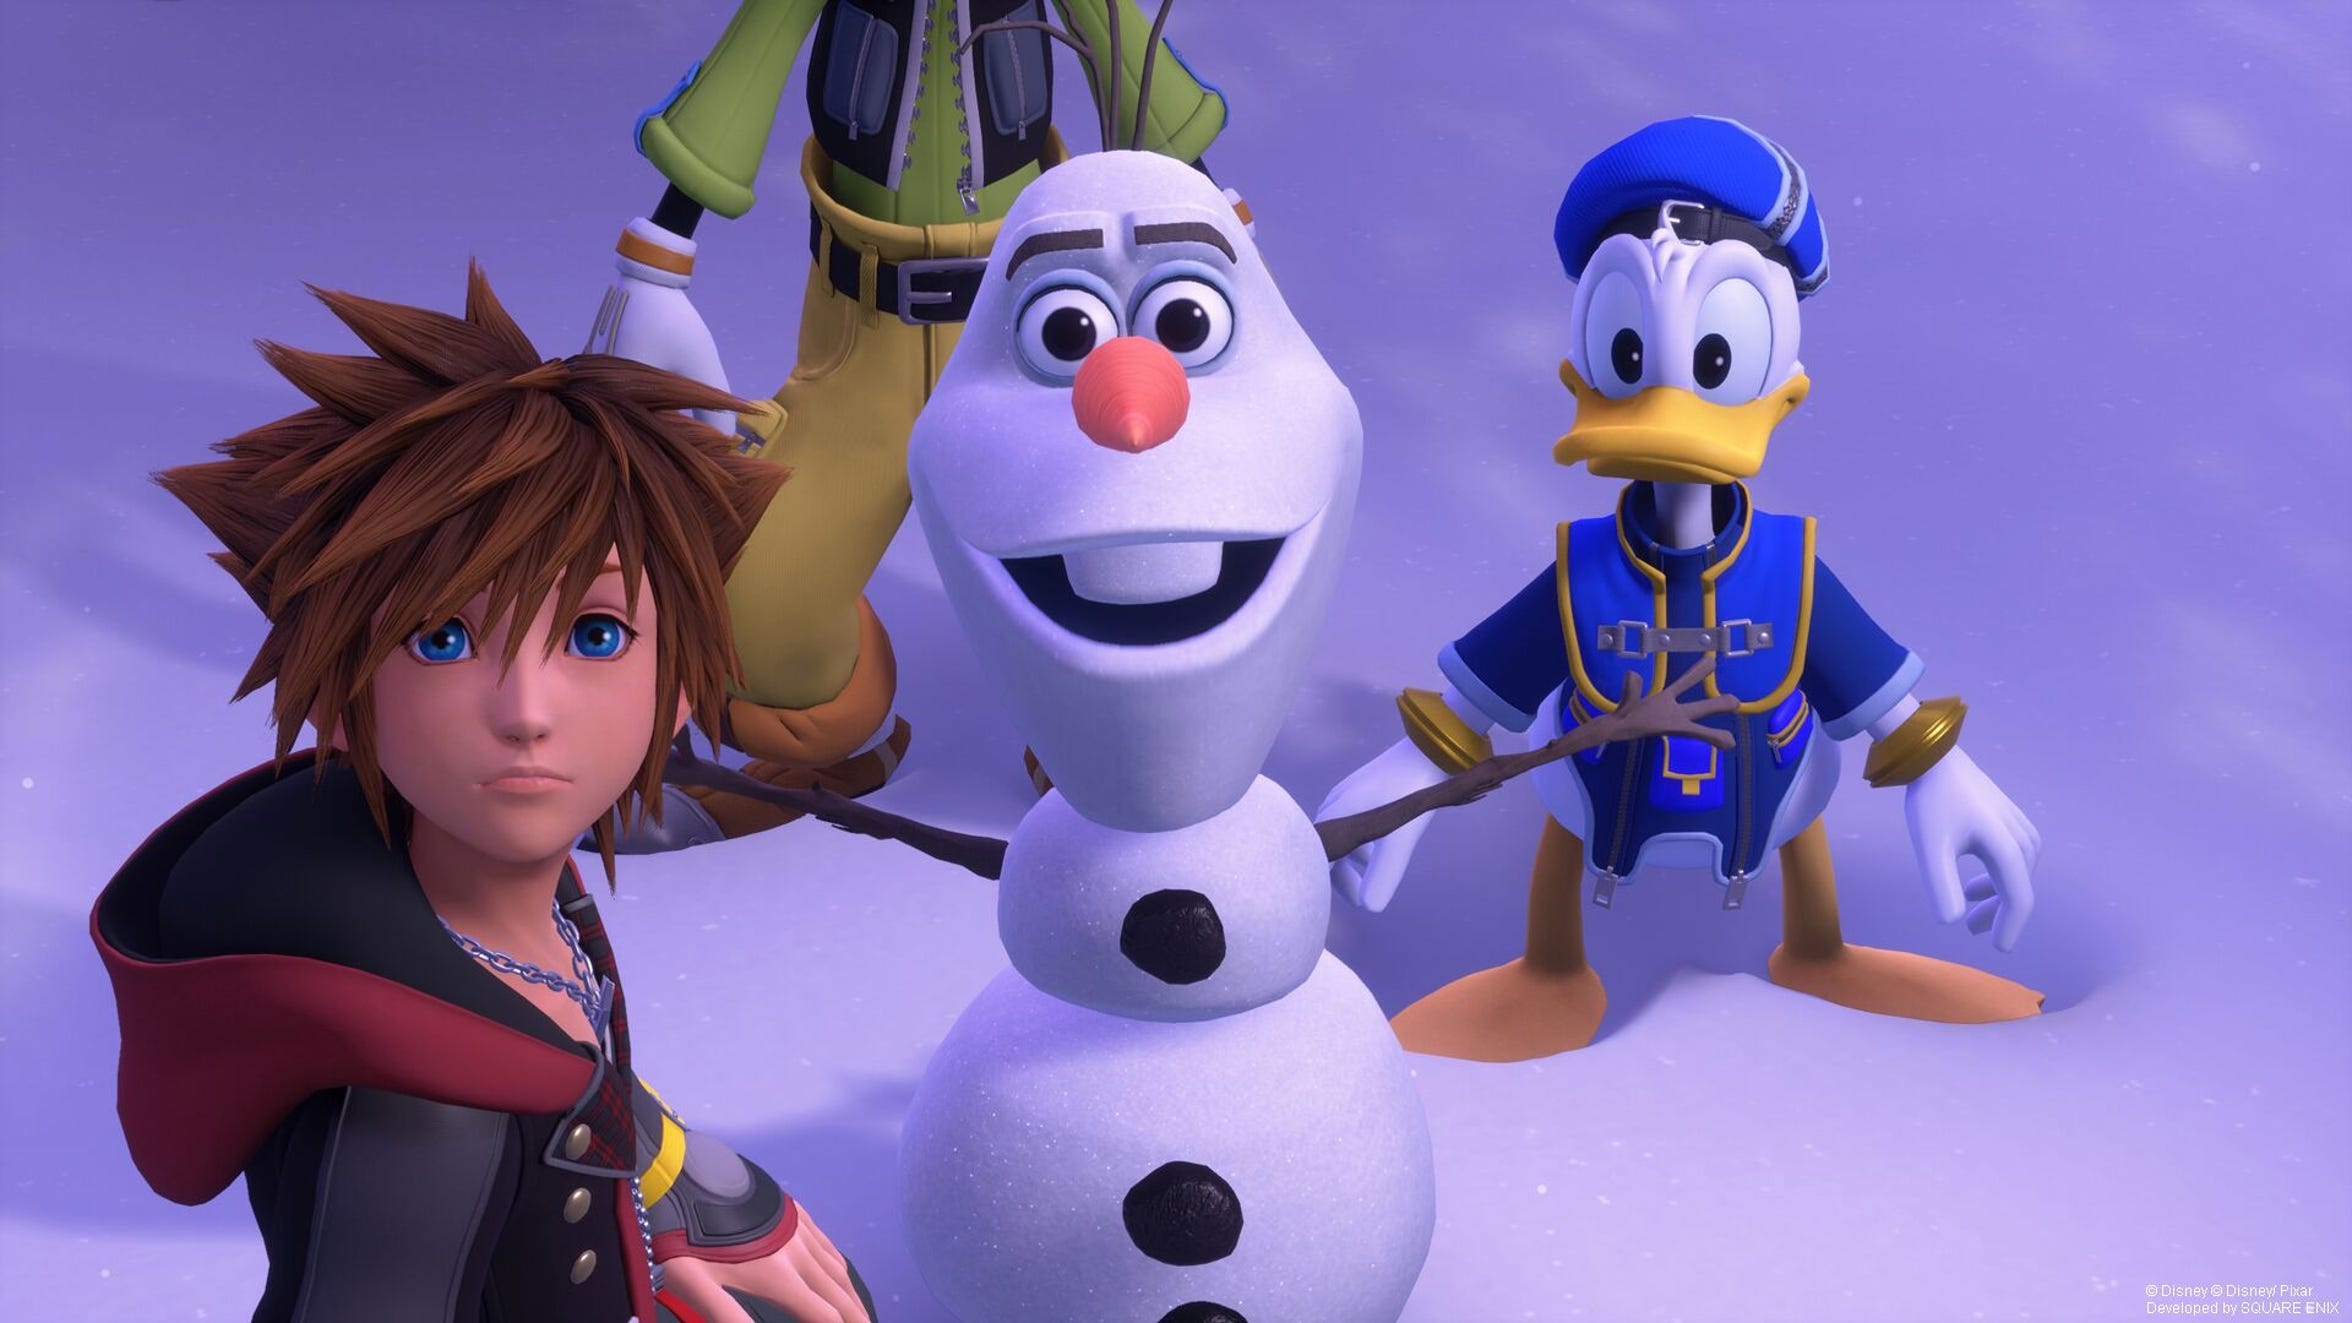 Kingdom Hearts III for PS4 and Xbox One.